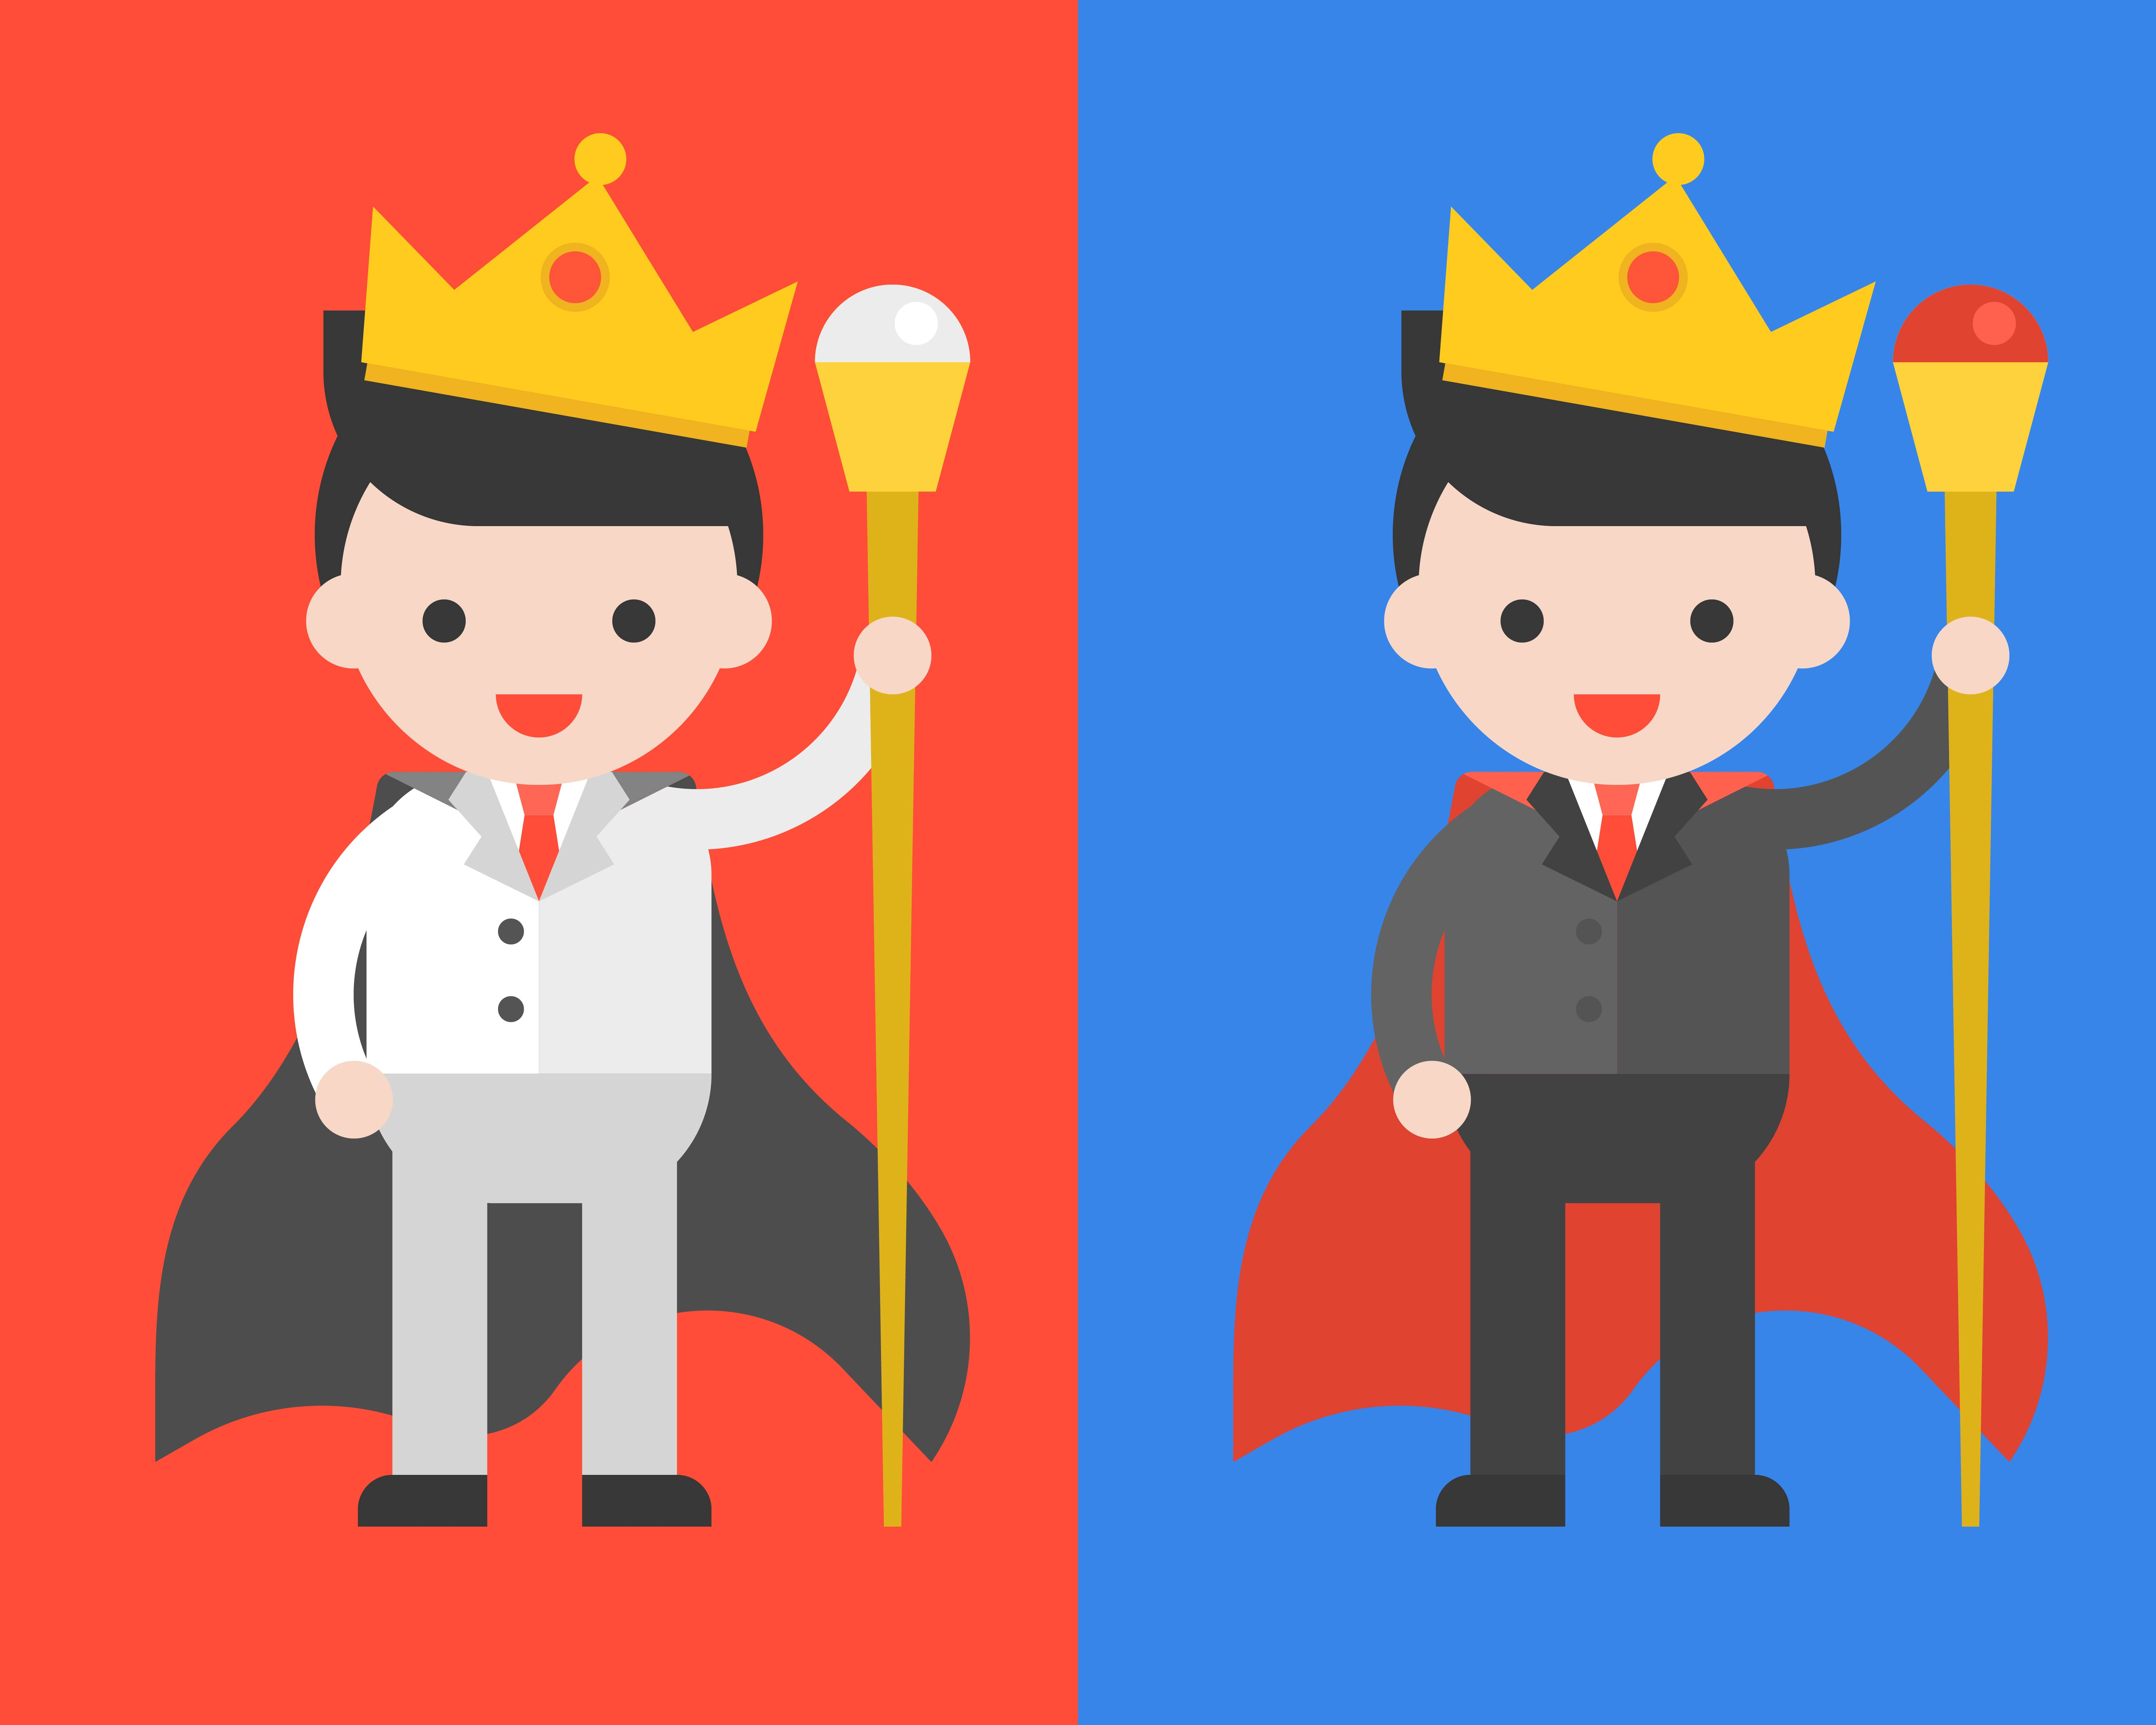 Businessman In Black And White Suits Wearing Crown And Wand As King Leader Download Free Vectors Clipart Graphics Vector Art Cartoon king holding a golden scepter. vecteezy